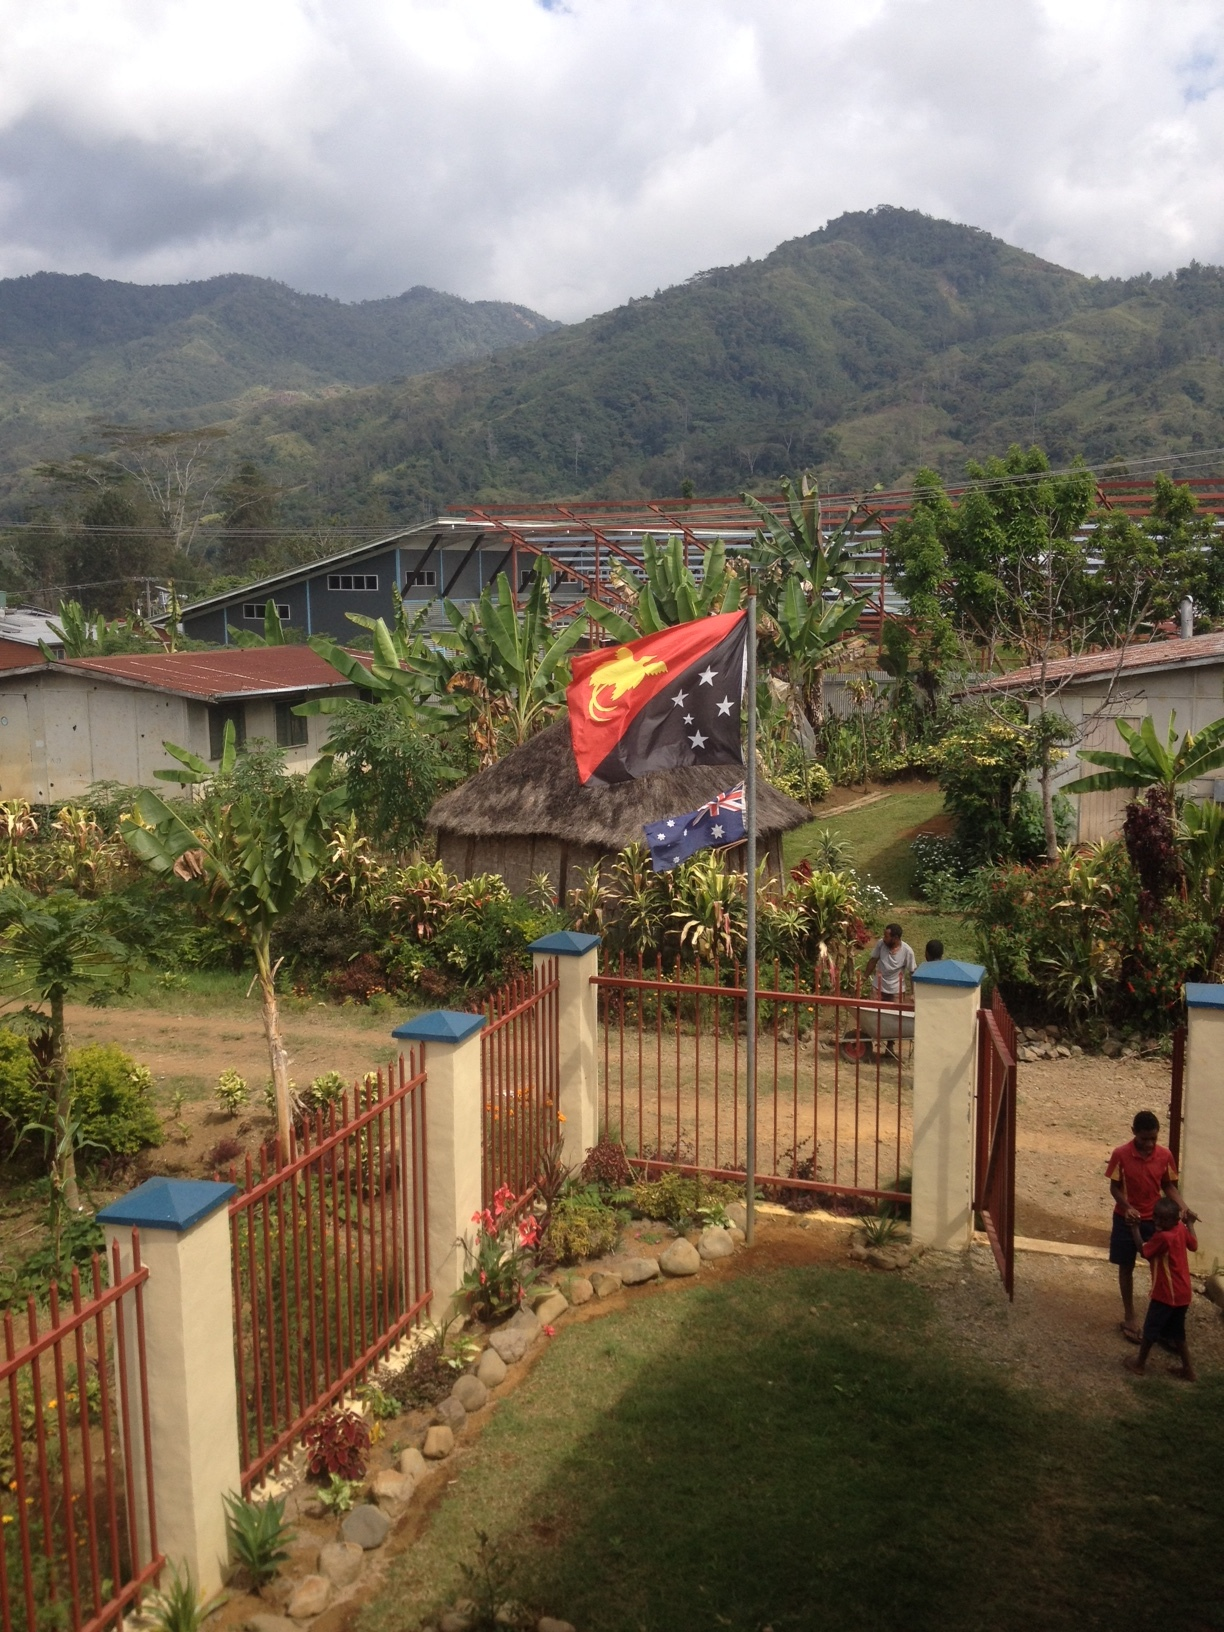 From the school stairway, looking back toward the hospital, with the PNG flag blowing.